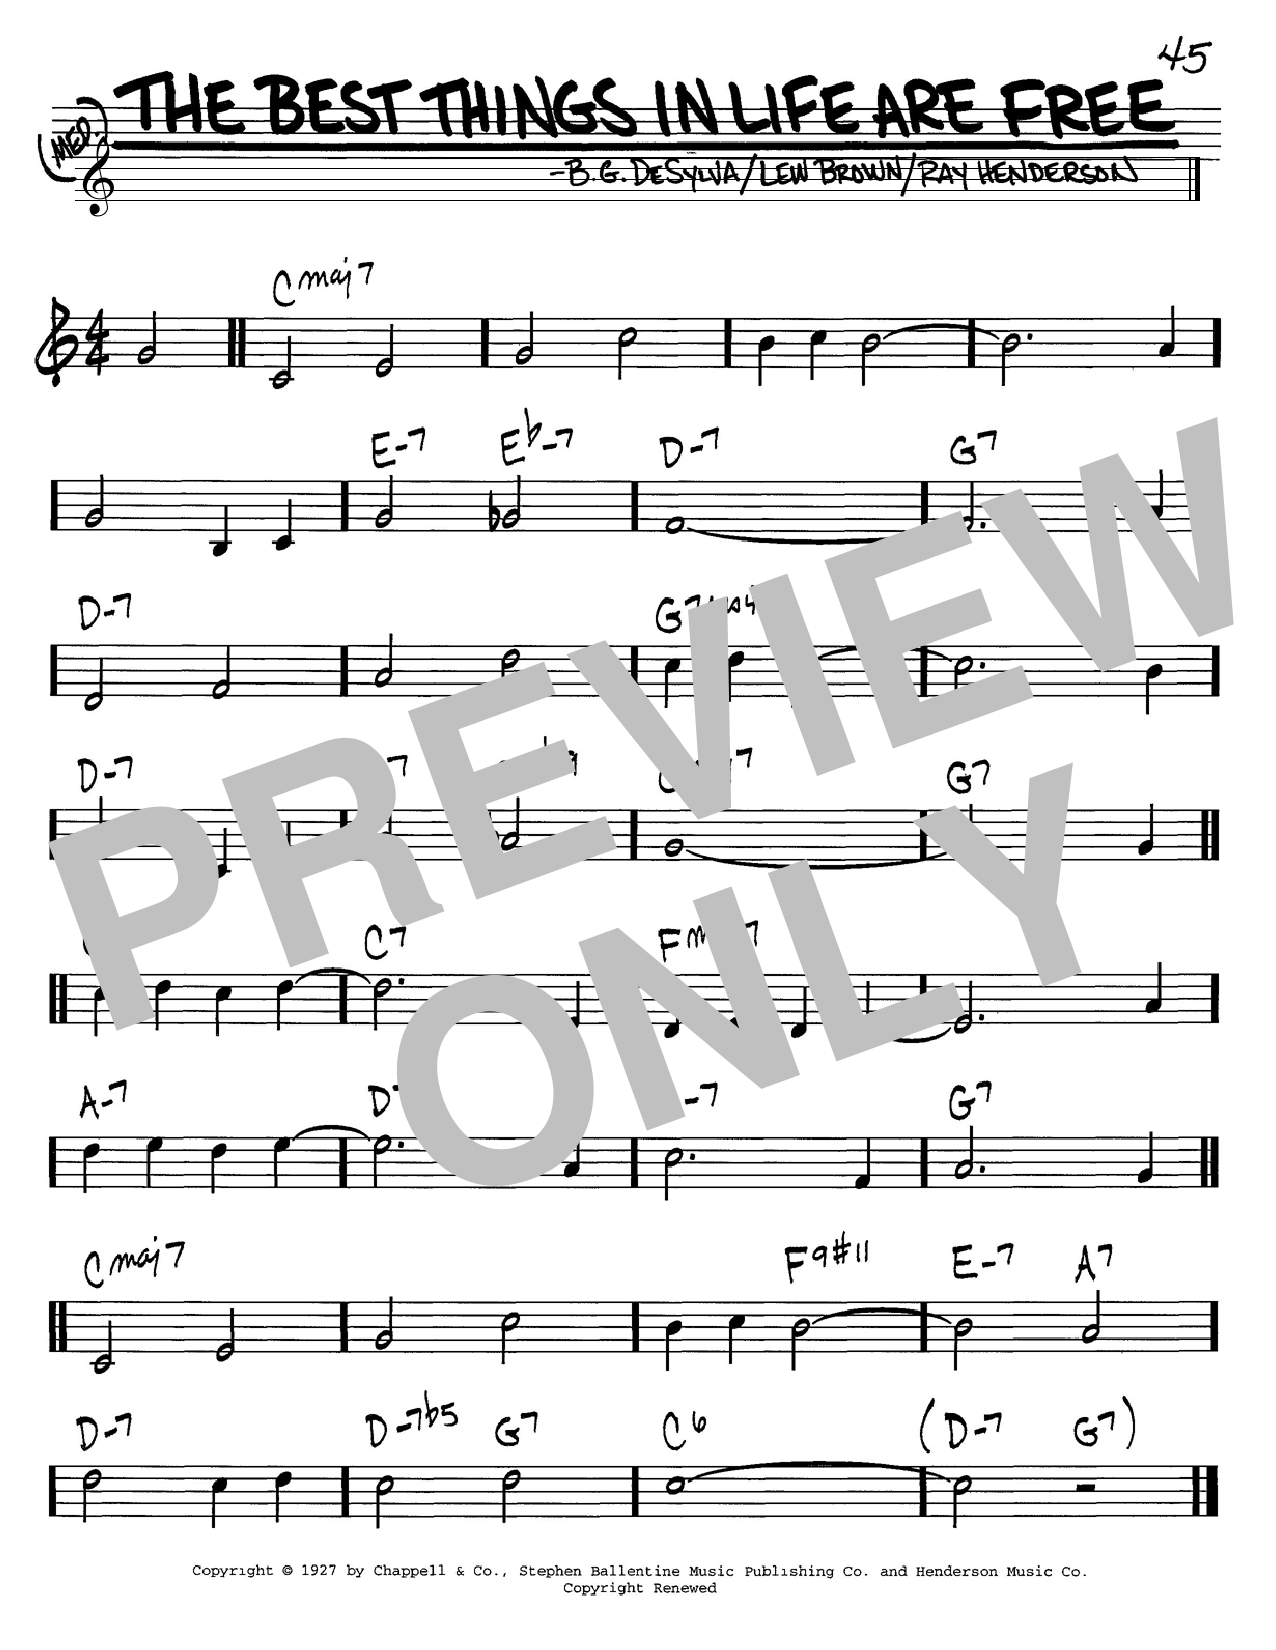 Dinah Shore The Best Things In Life Are Free sheet music notes and chords. Download Printable PDF.